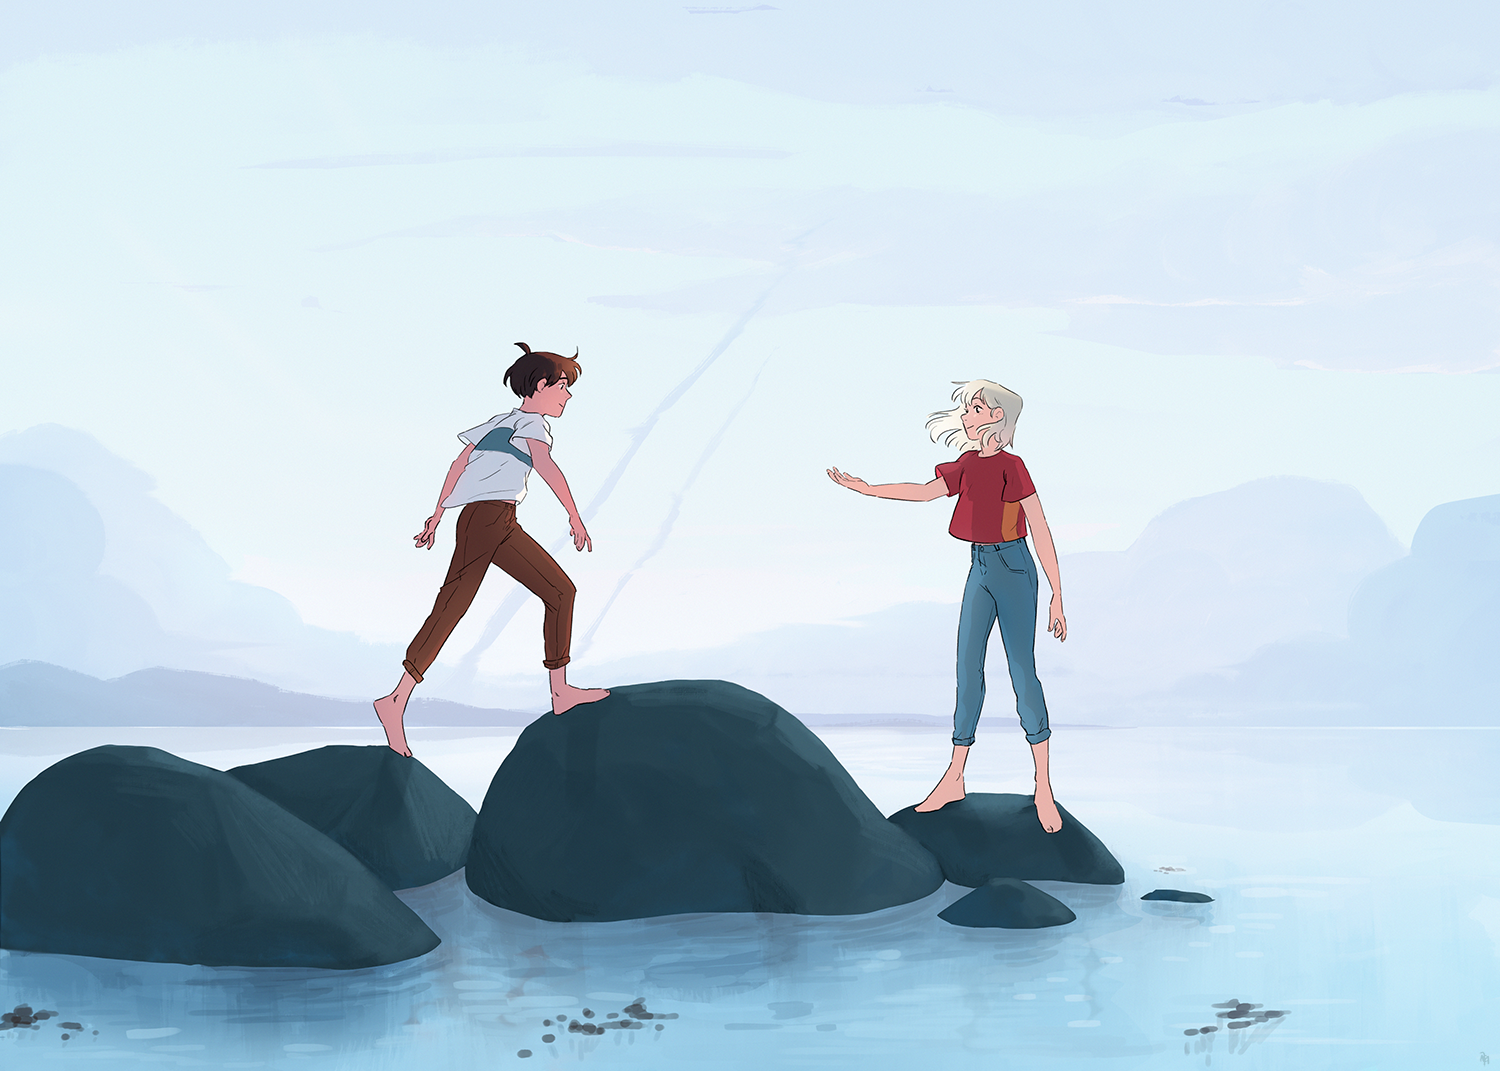 Two teens walk on rocks surrounded by water, the girl has reached out her hand for the boy to grab.